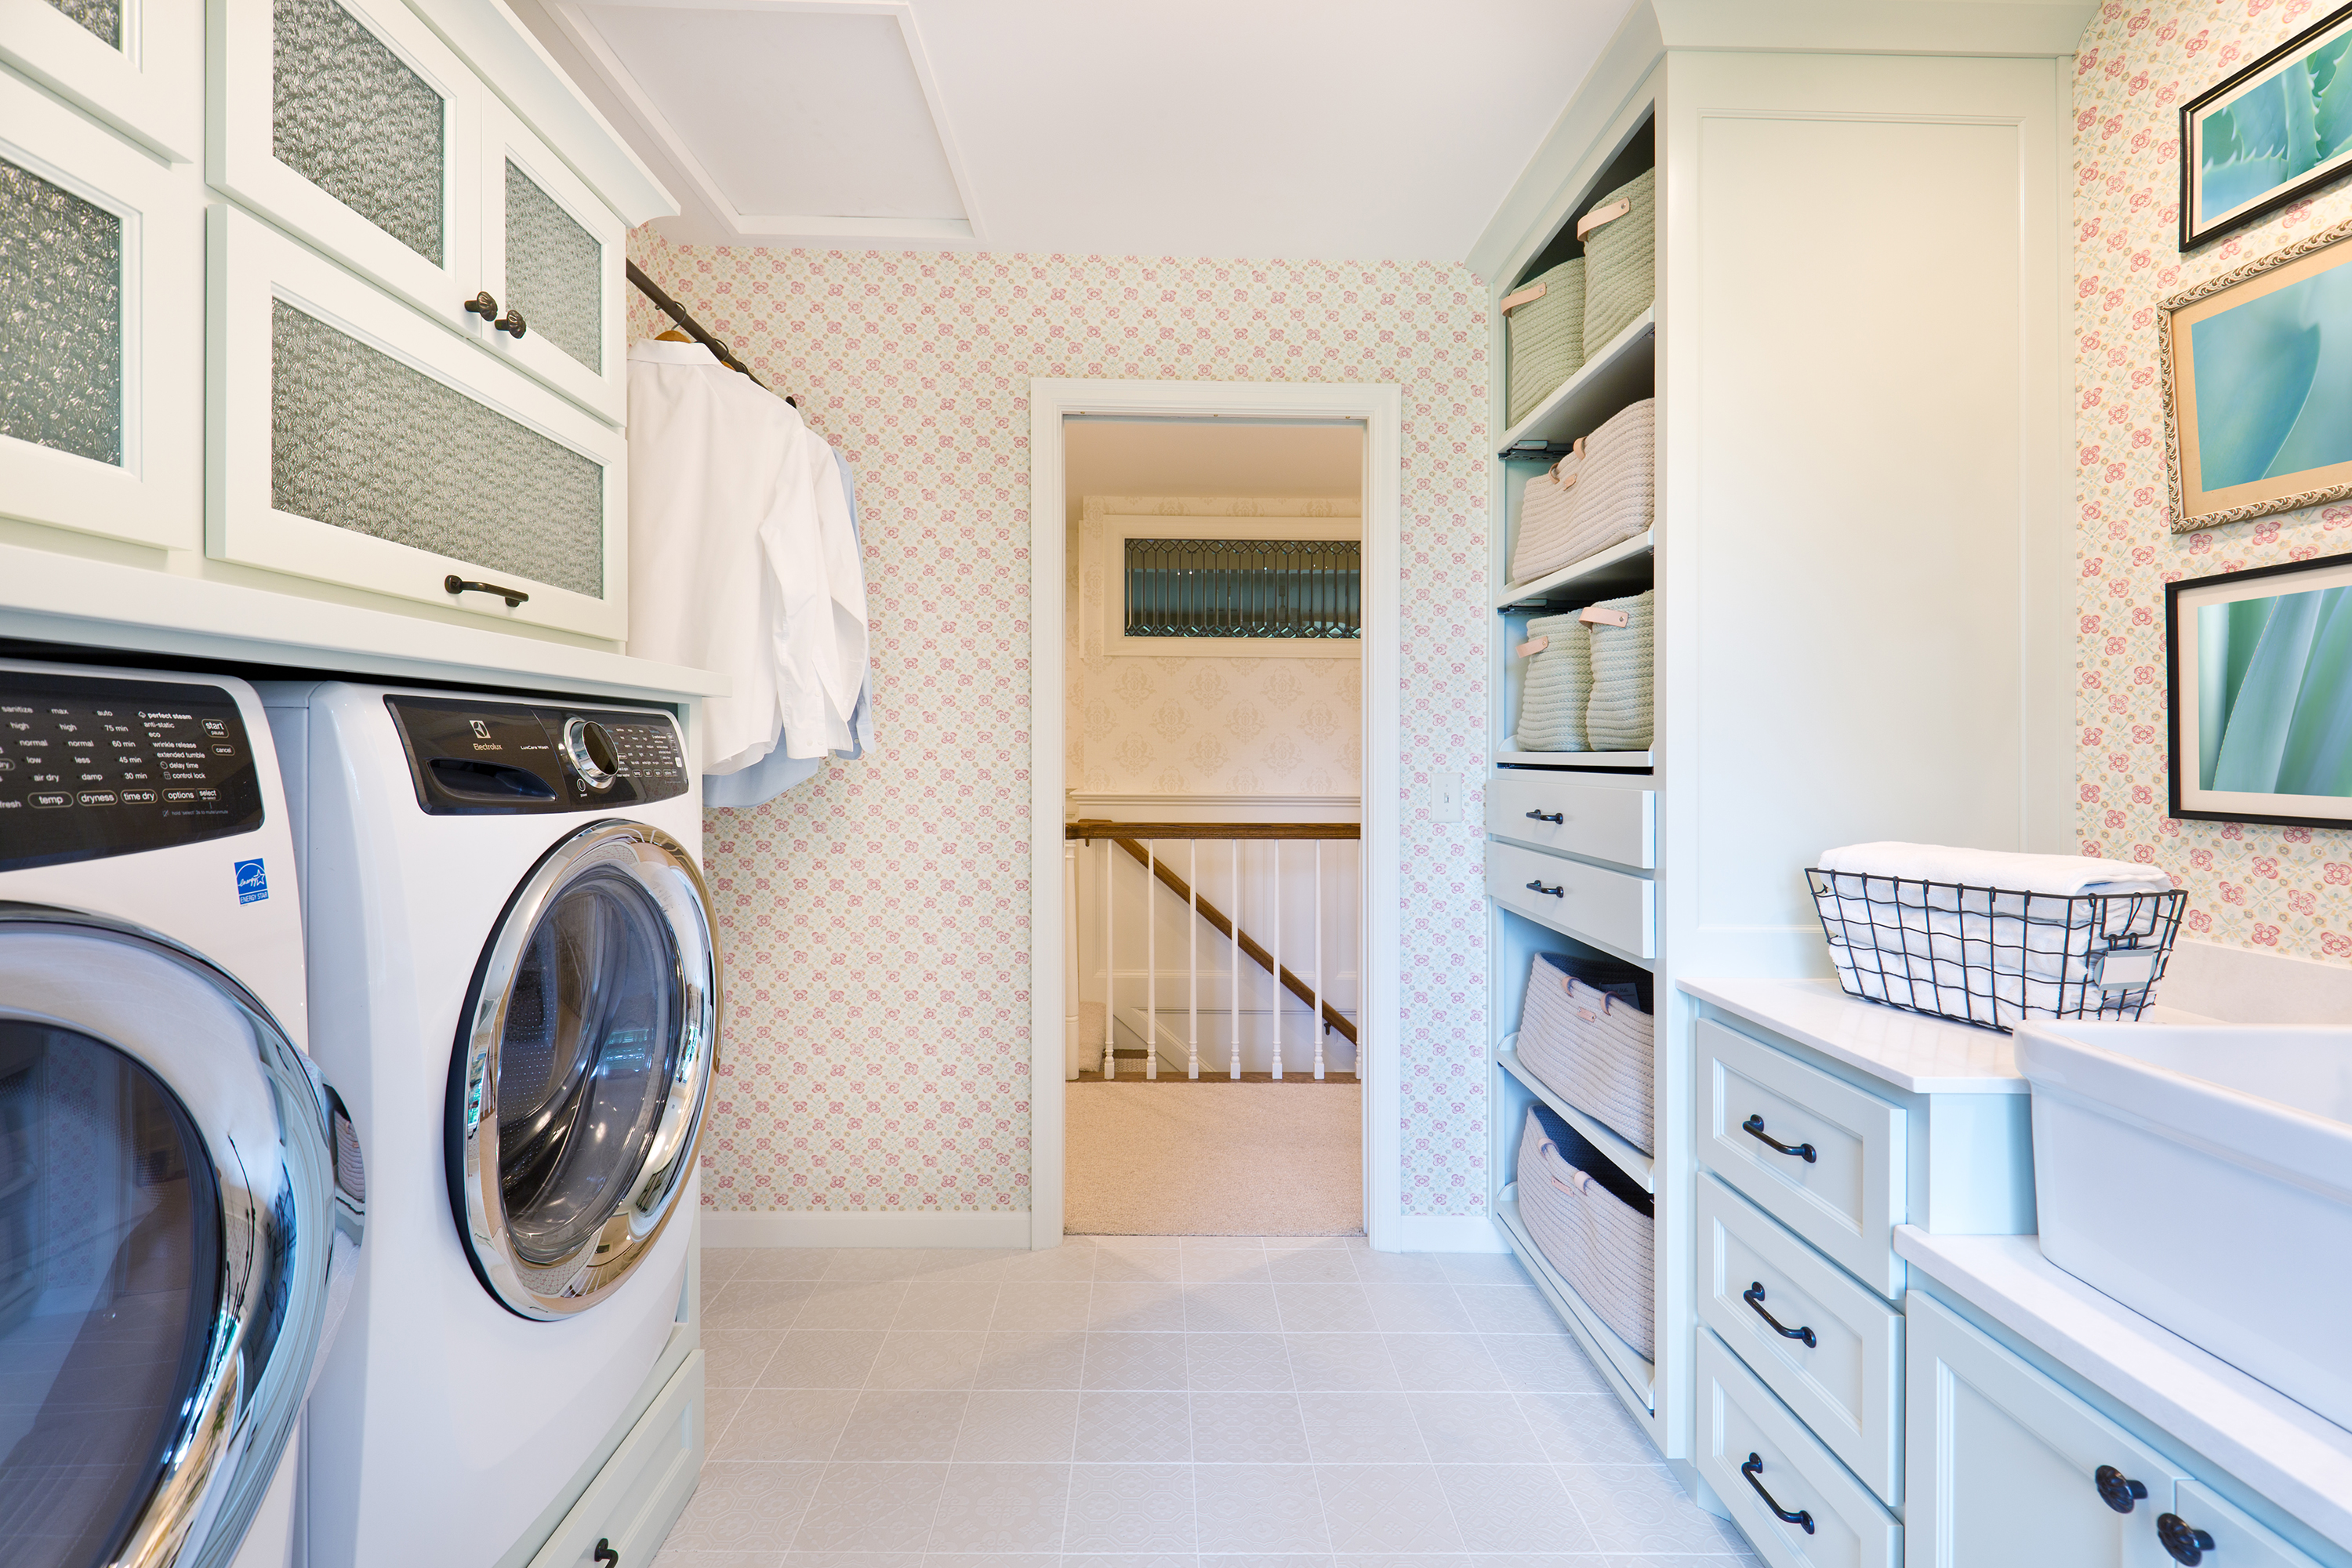 Laundry room in home.